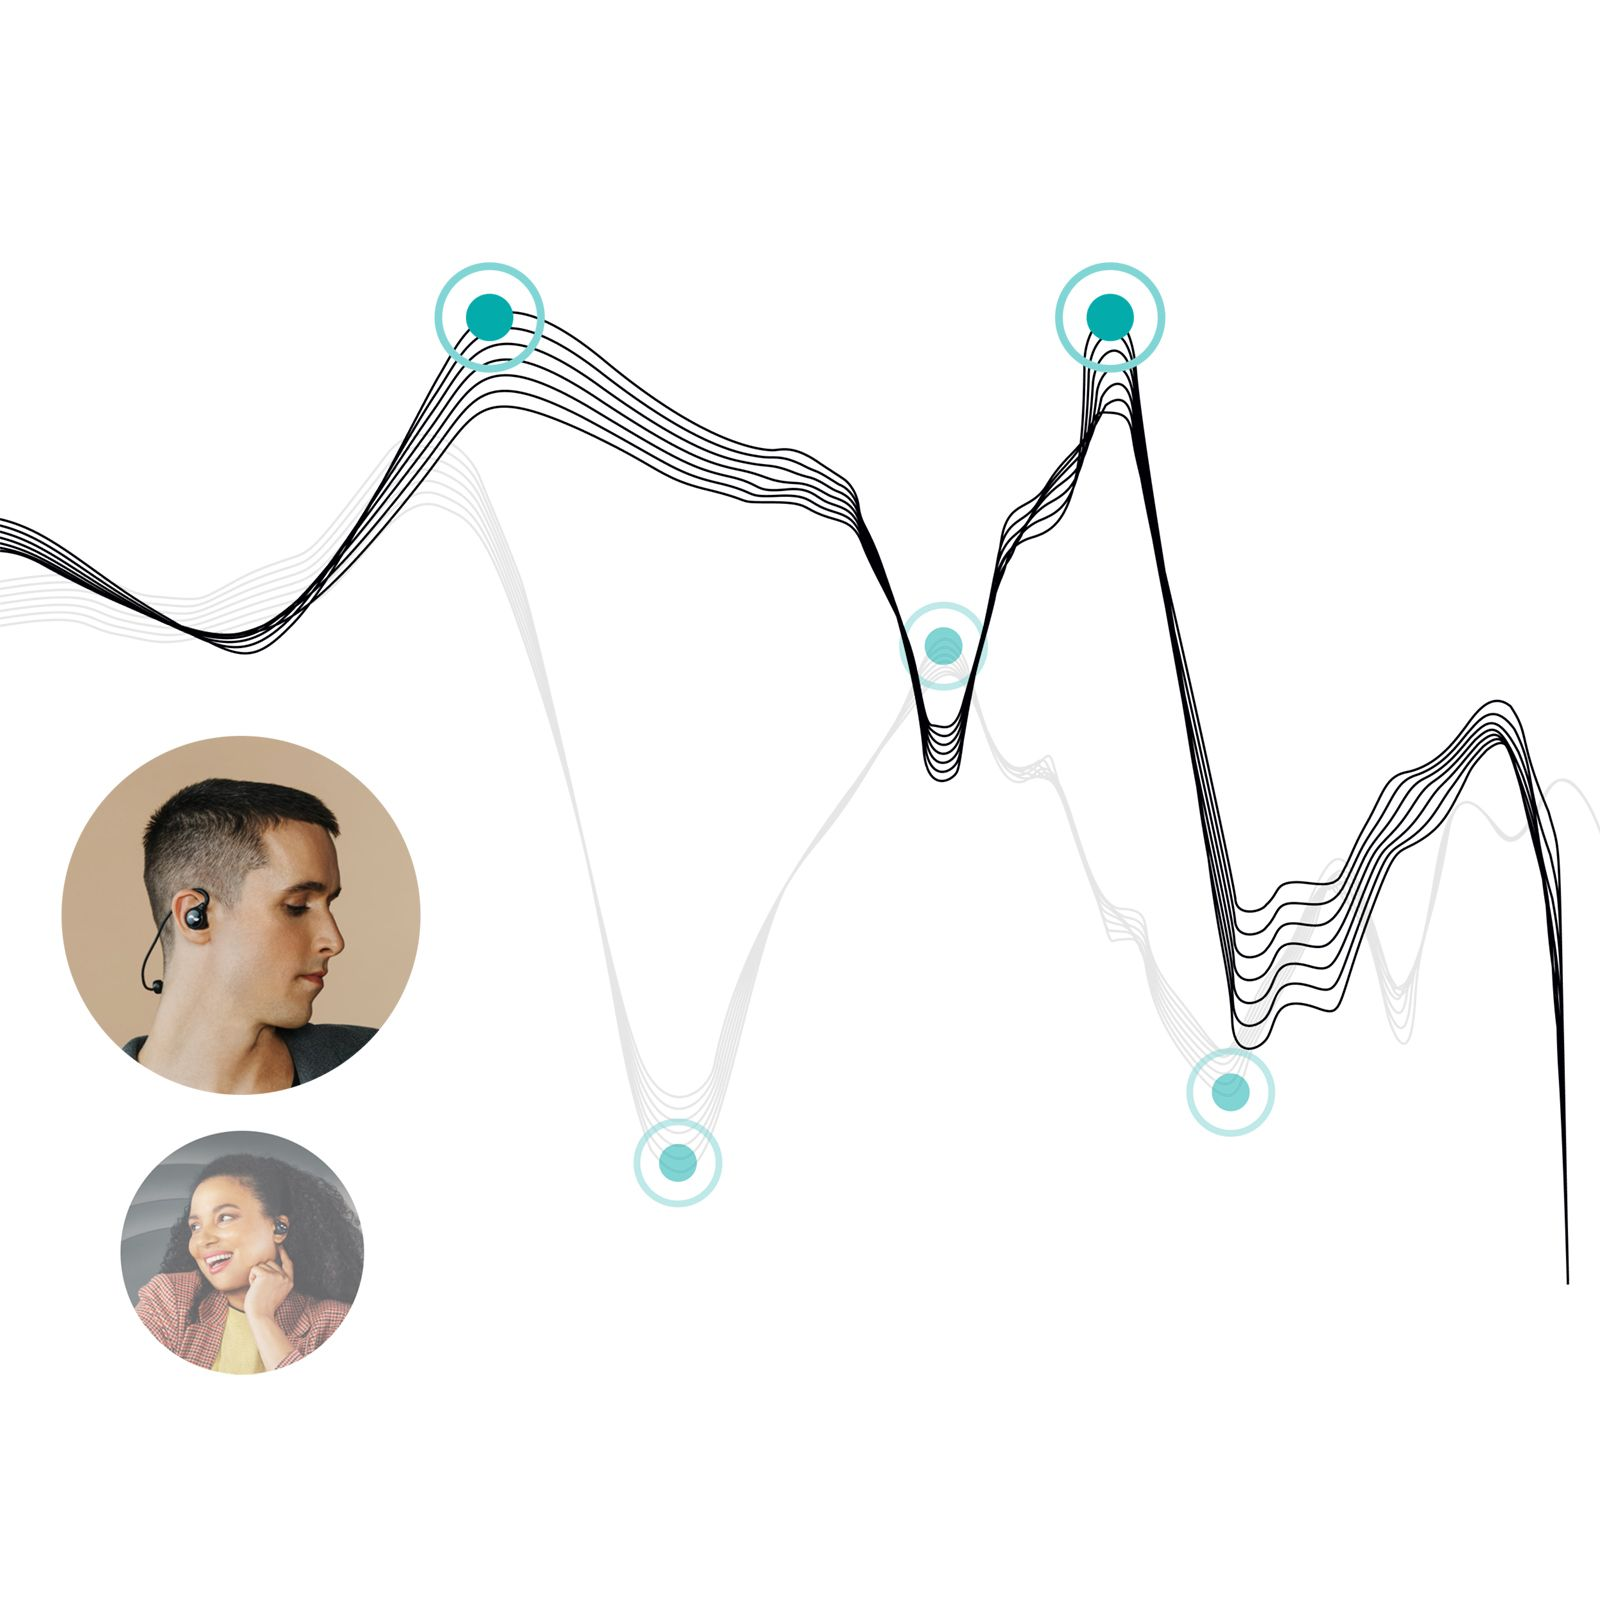 Diagram showing how listening experience can differ between two people using Otoacoustic Emissions (OAEs)